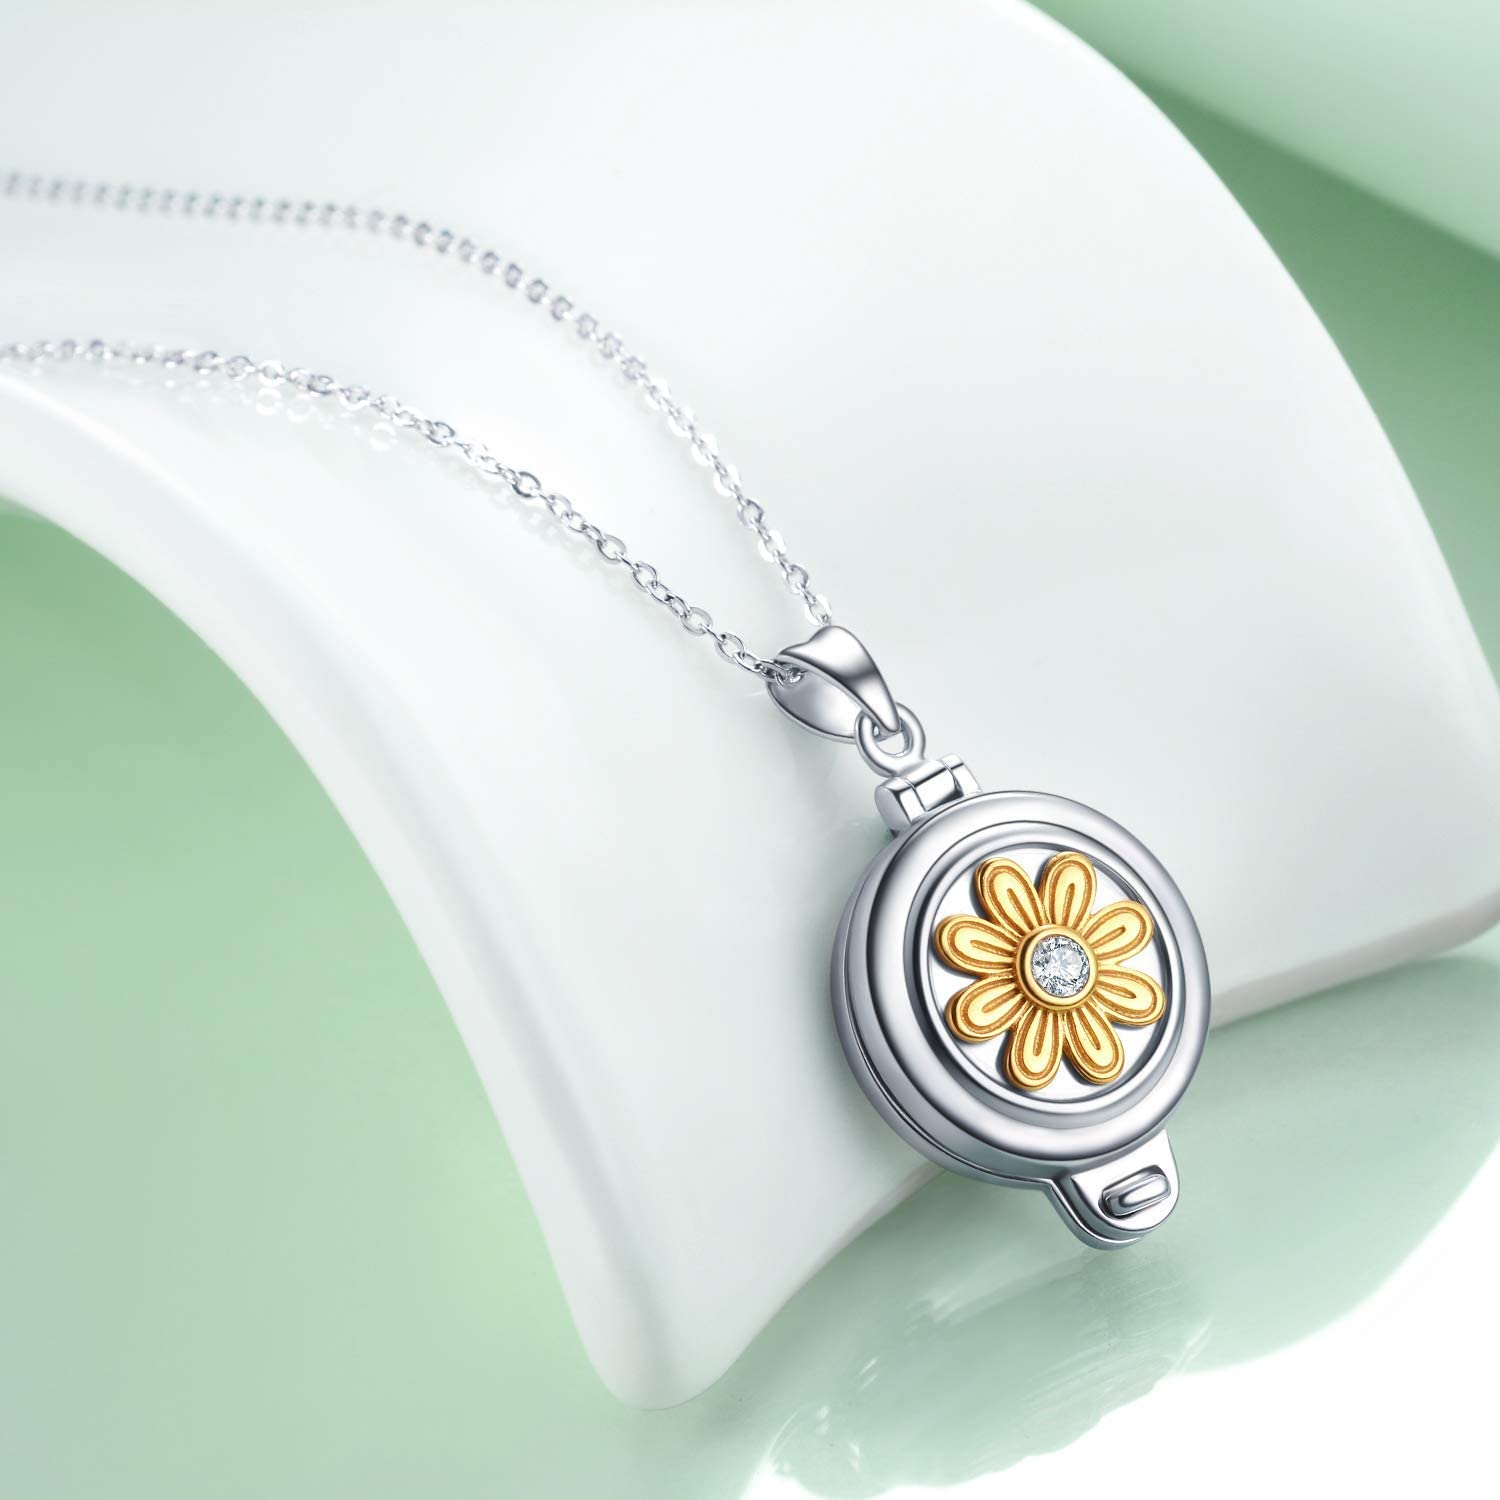 AOBOCO Personalized Locket Necklace That Holds Pictures Sterling Silver Sunflower Daisy Custom Locket Pendant Necklace Two-Tone with Clear Crystal